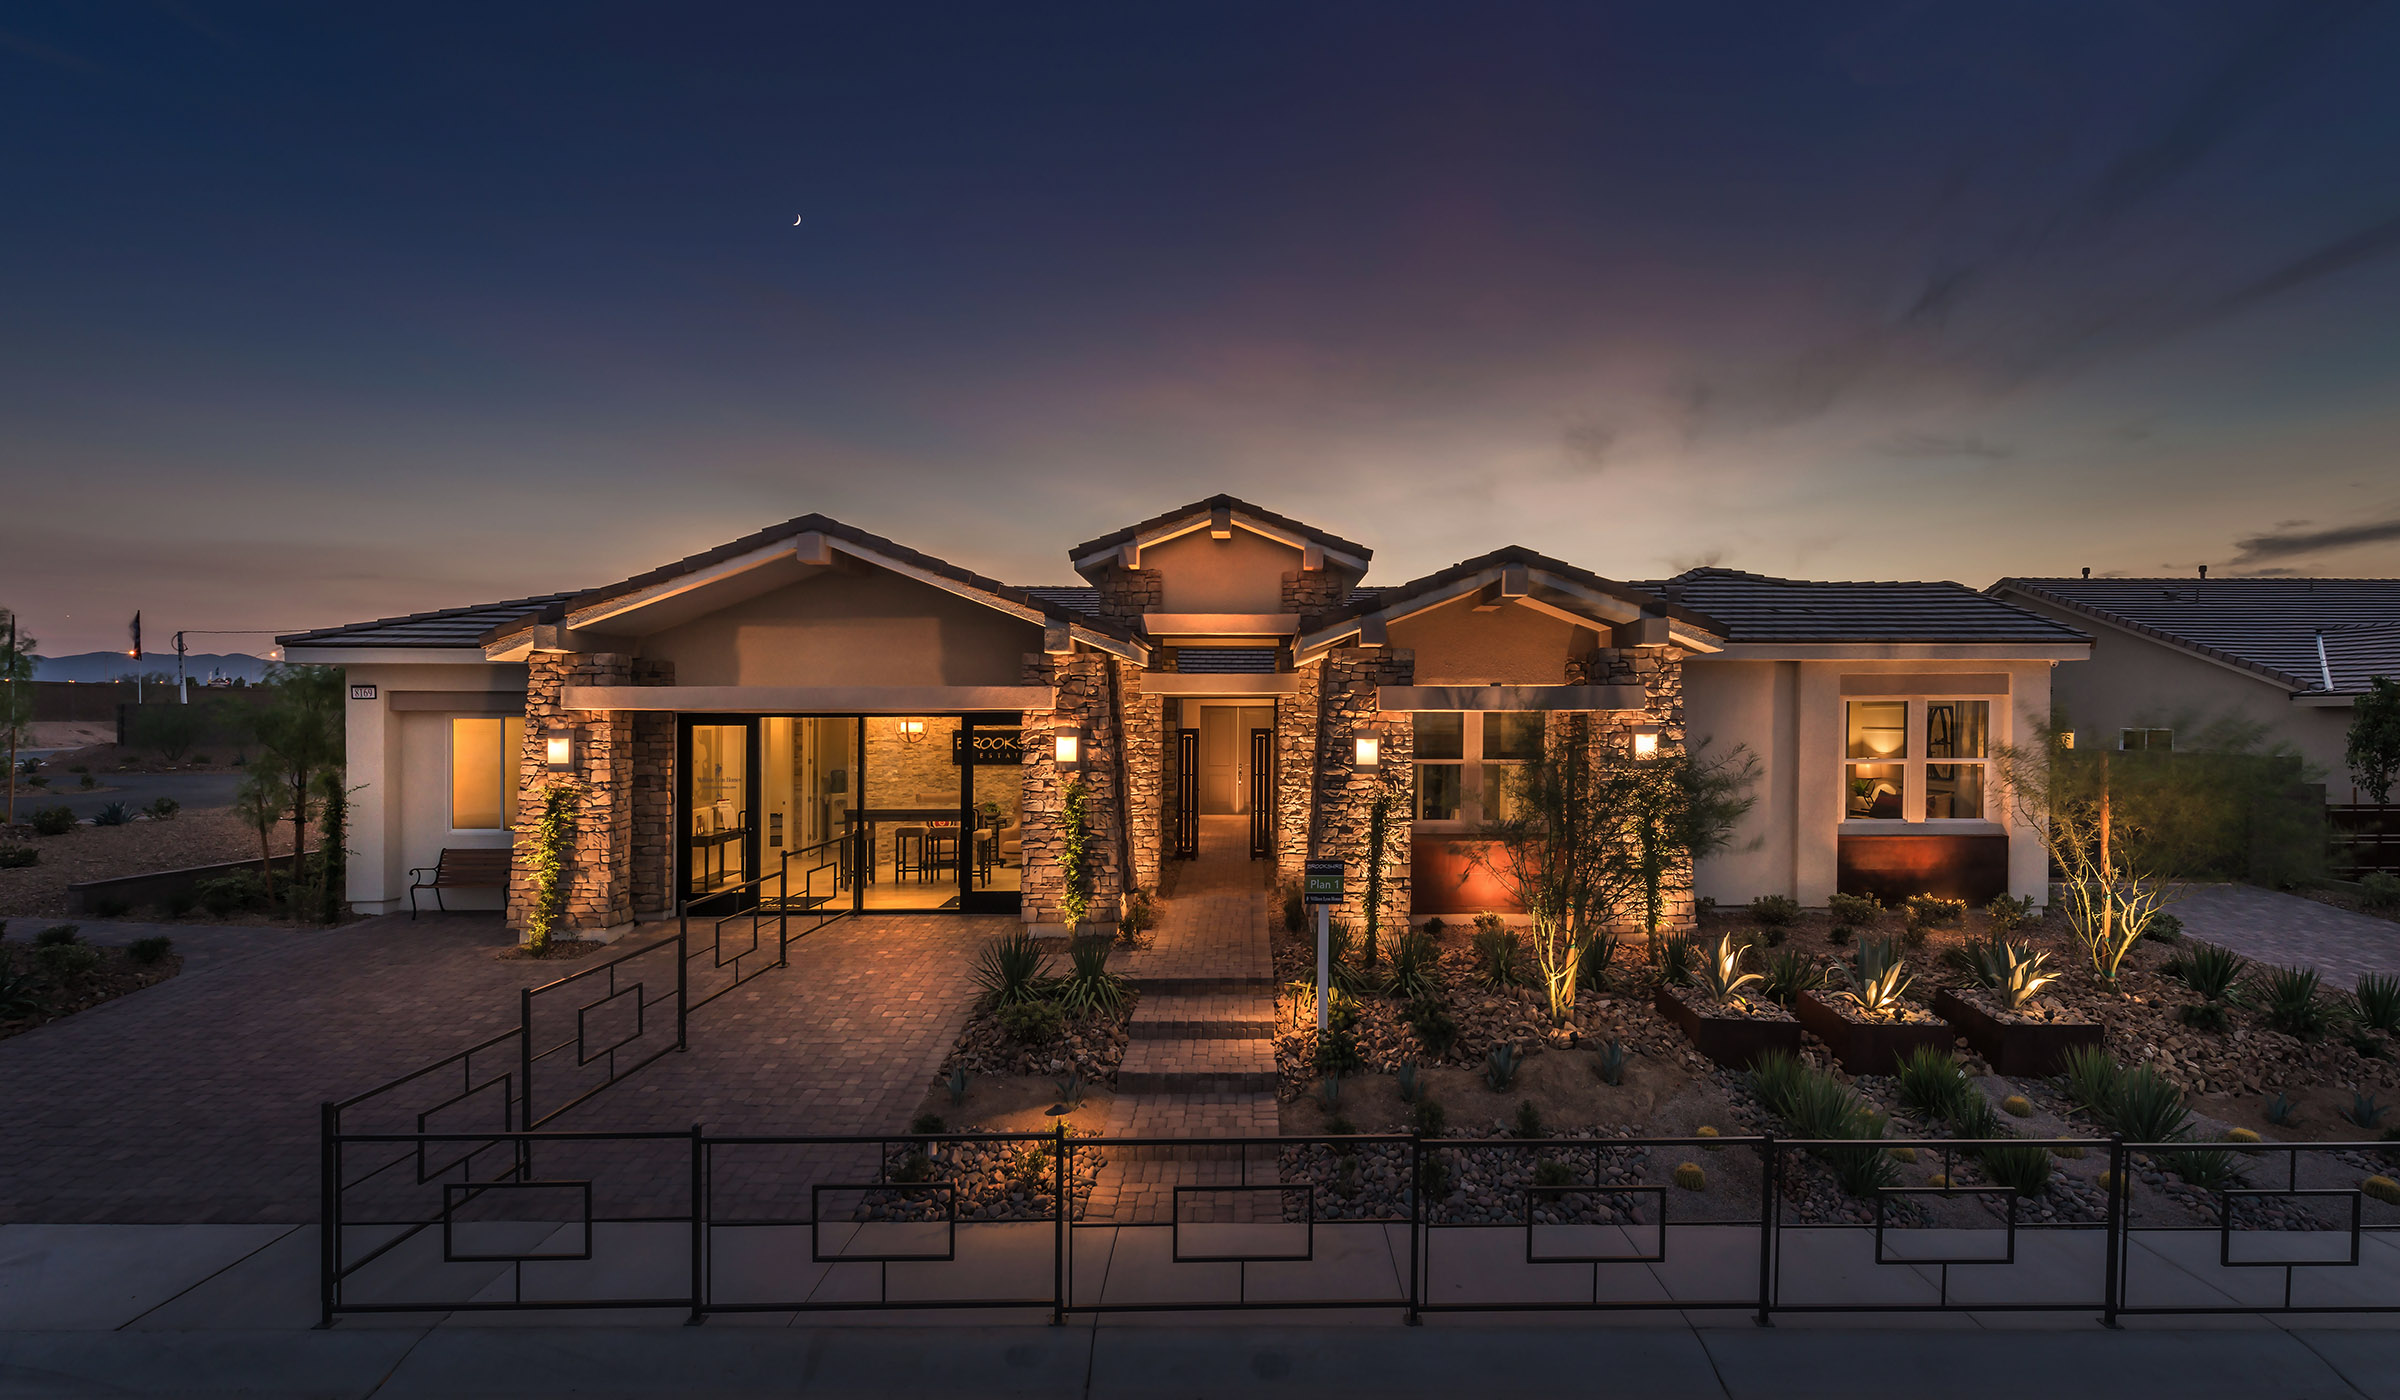 Southwest Las Vegas New Construction Homes North Of